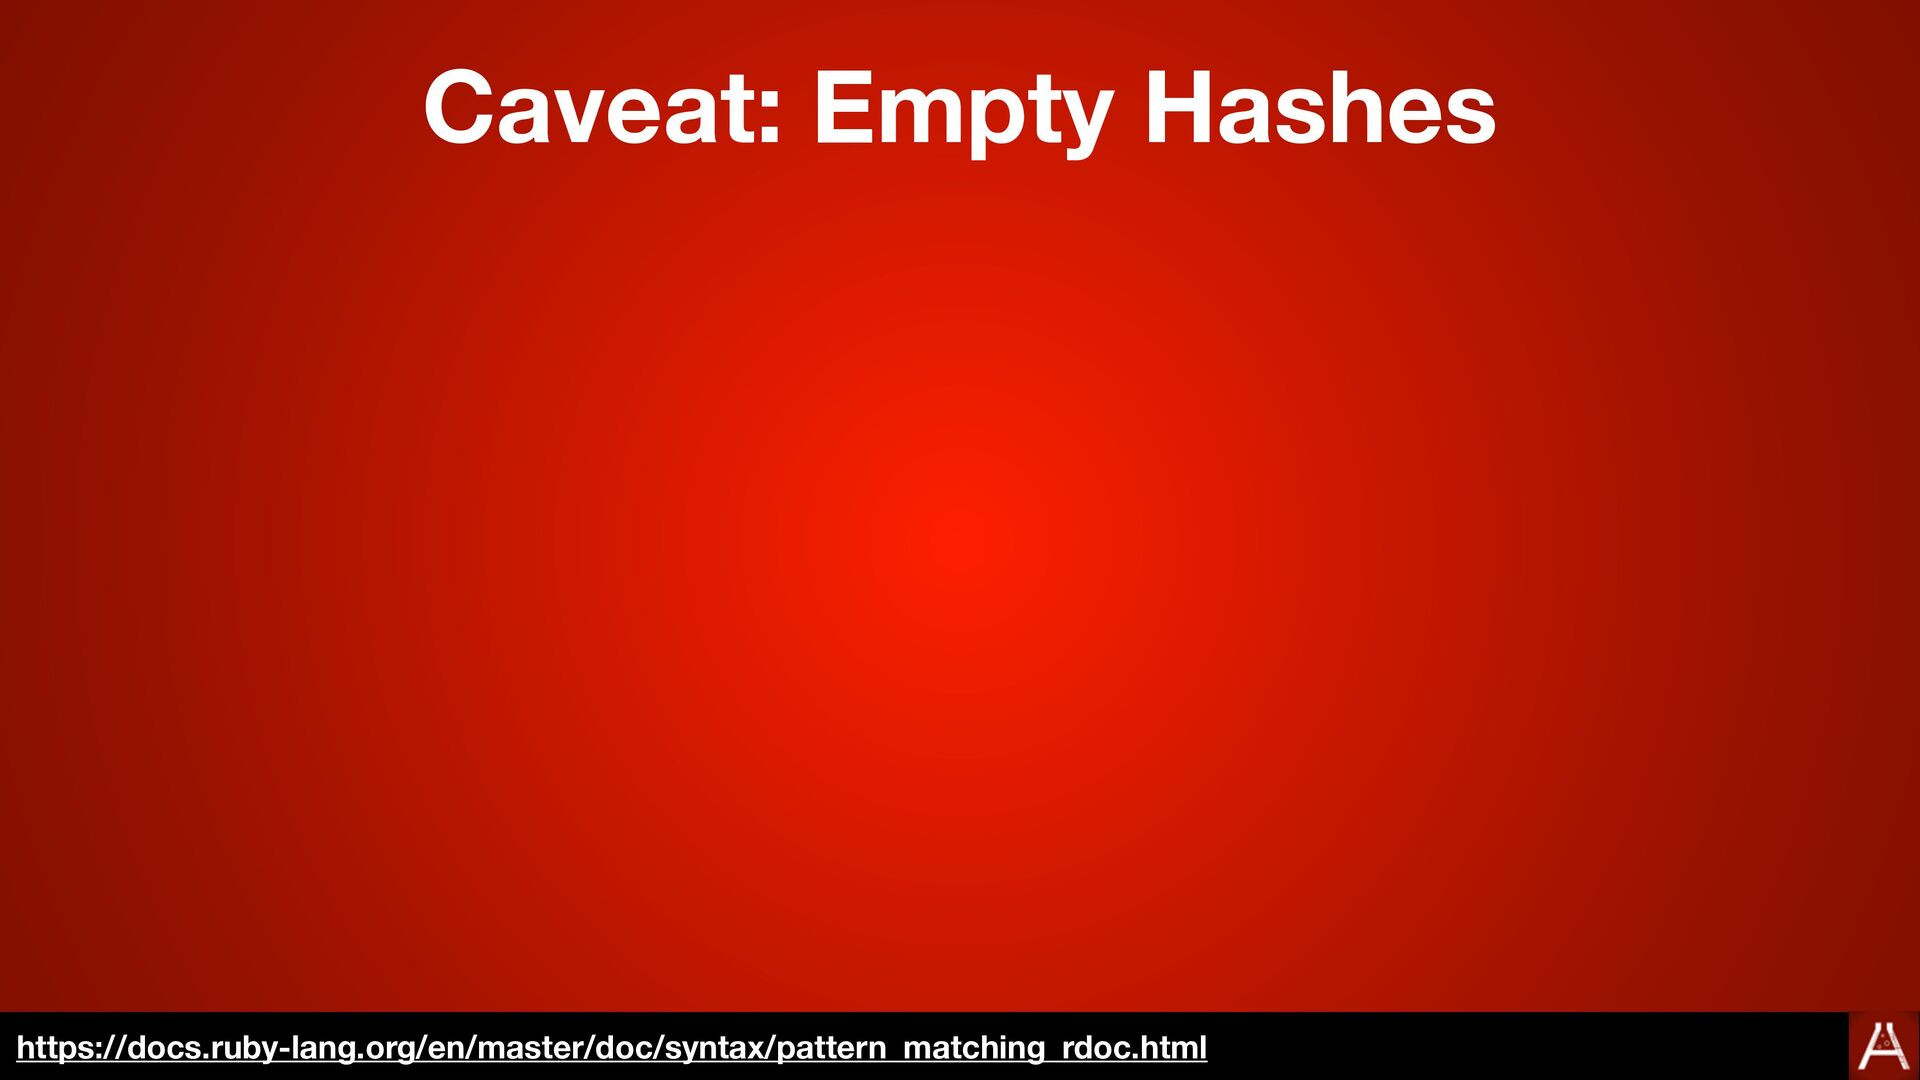 Caveat: Empty Hashes https://docs.ruby-lang.org...